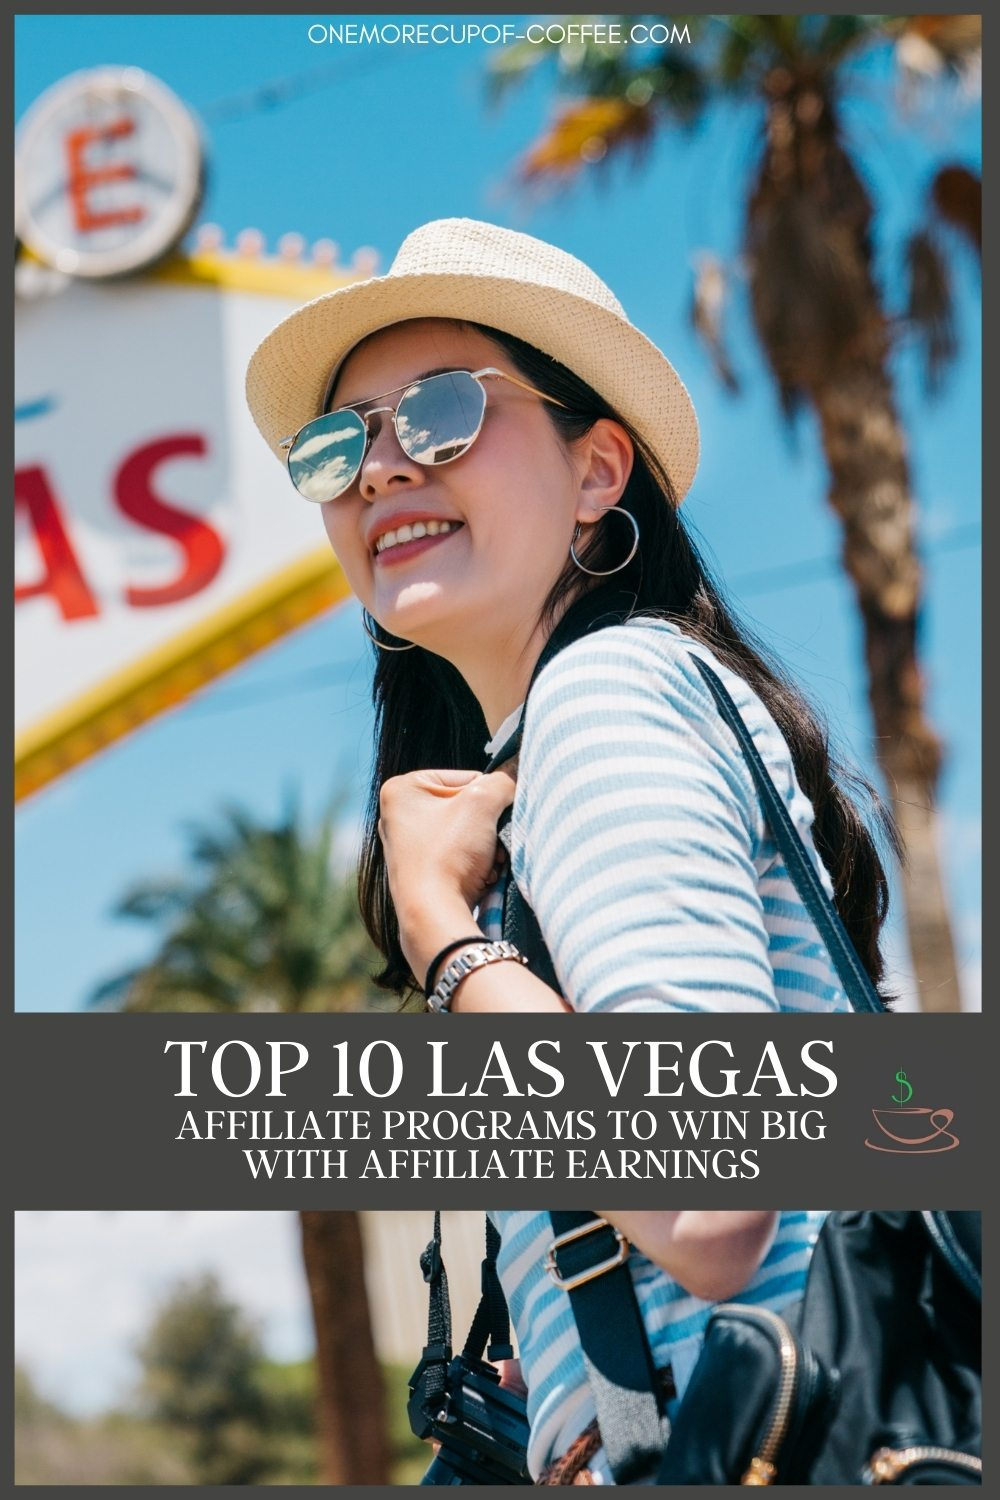 """a smiling female tourist in Las Vegas with camera around her neck, backpack, hat, and sunglasses; with text overlay """"Top 10 Las Vegas Affiliate Programs To Win Big With Affiliate Earnings"""""""